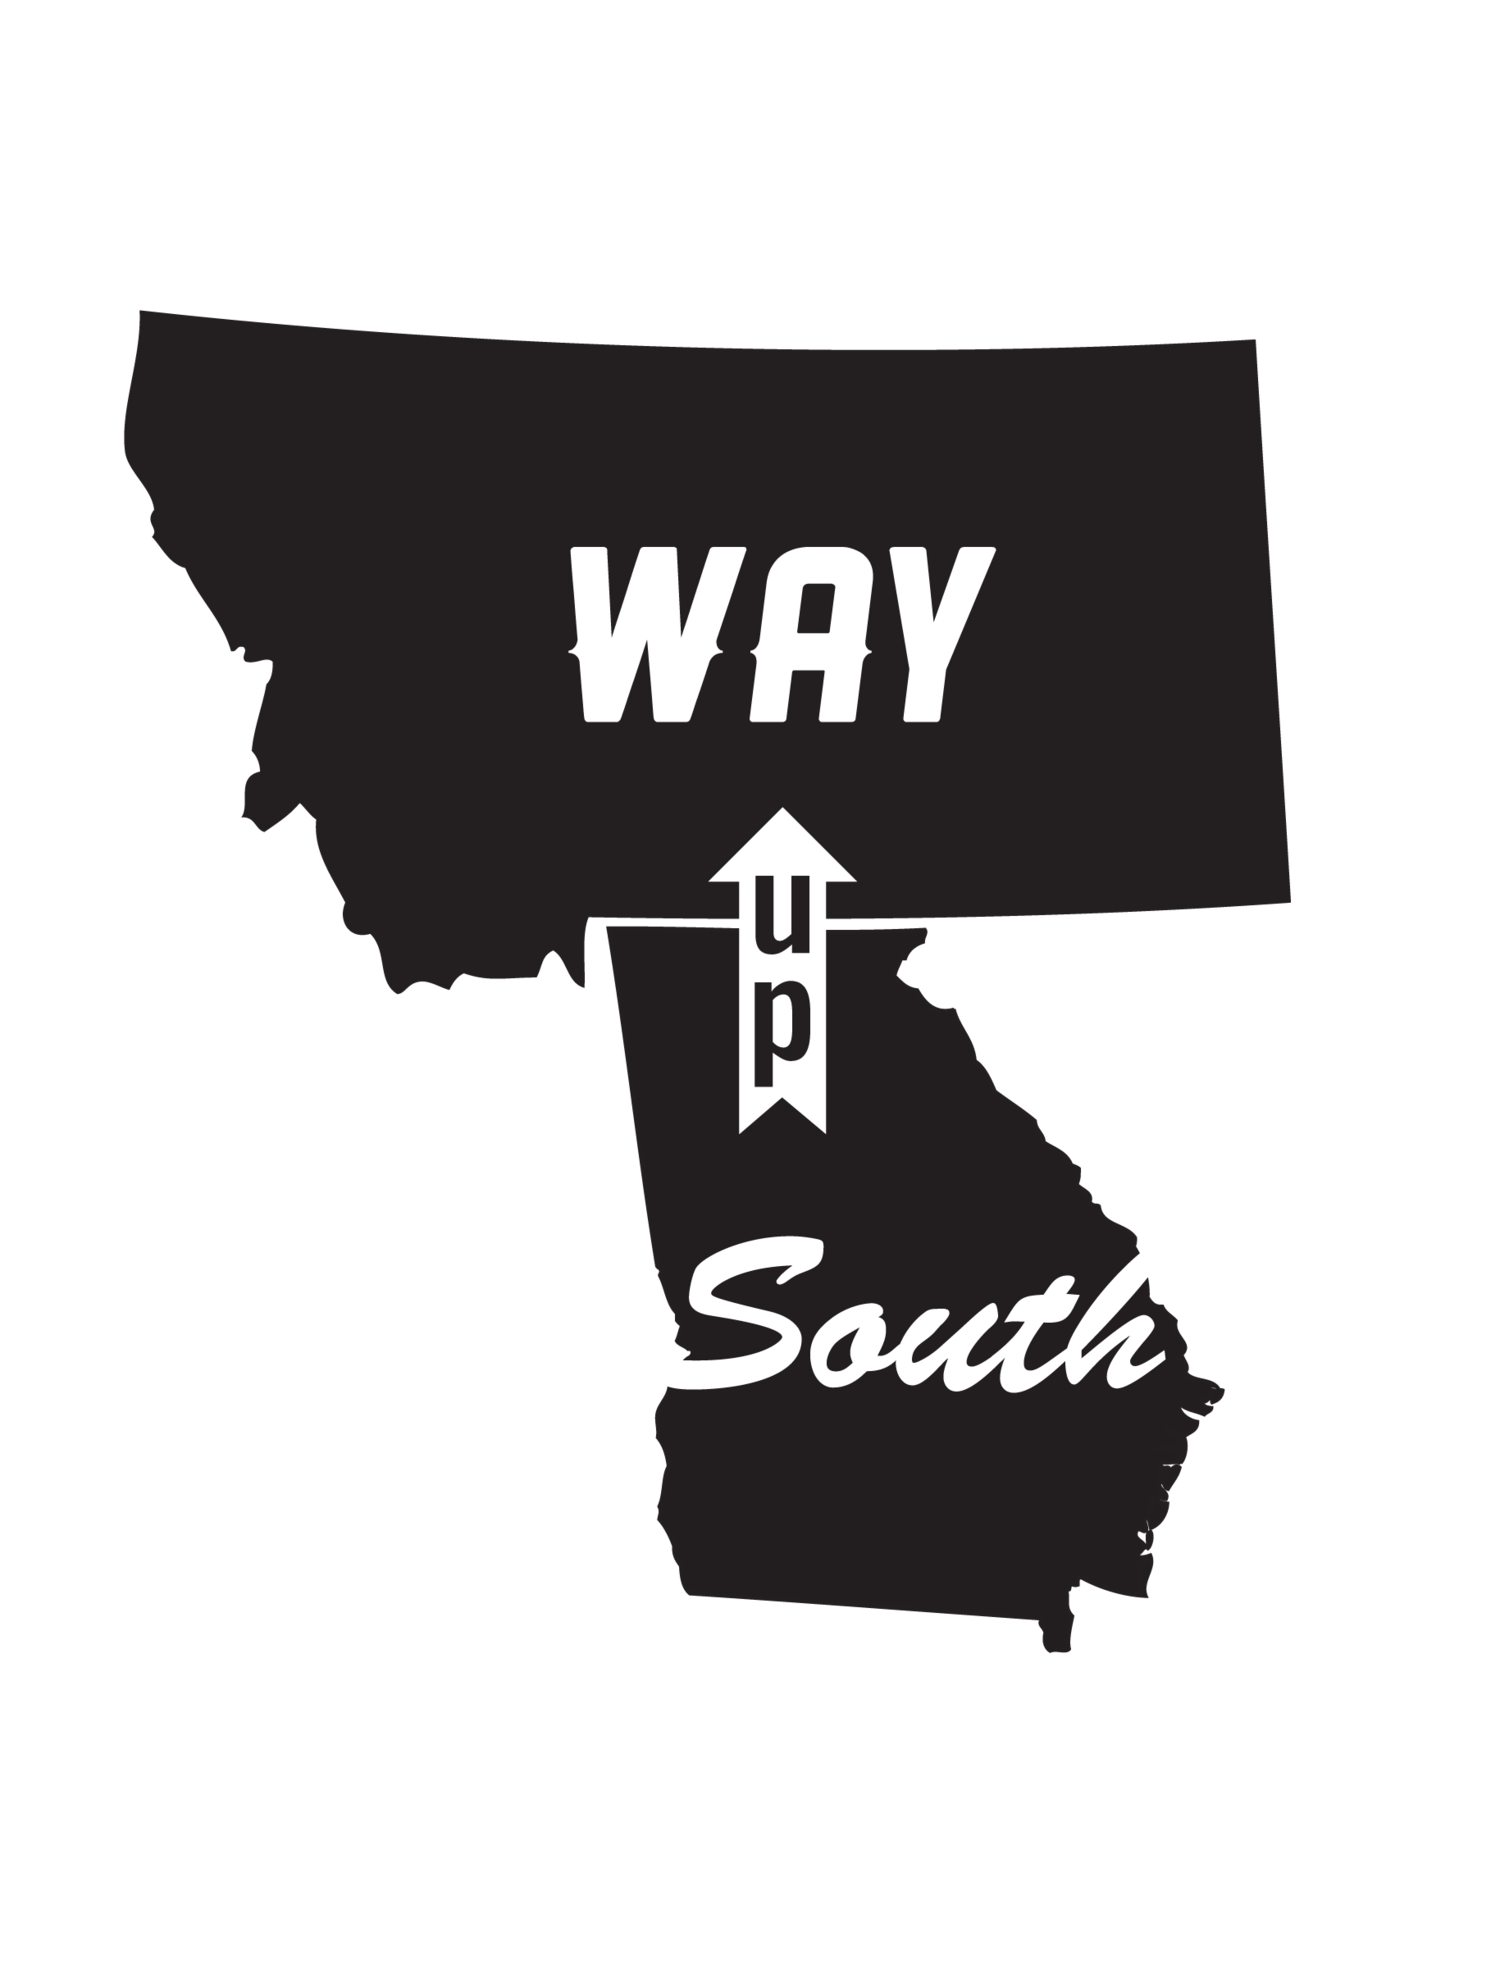 Way Up South - Whitefish Community Radio